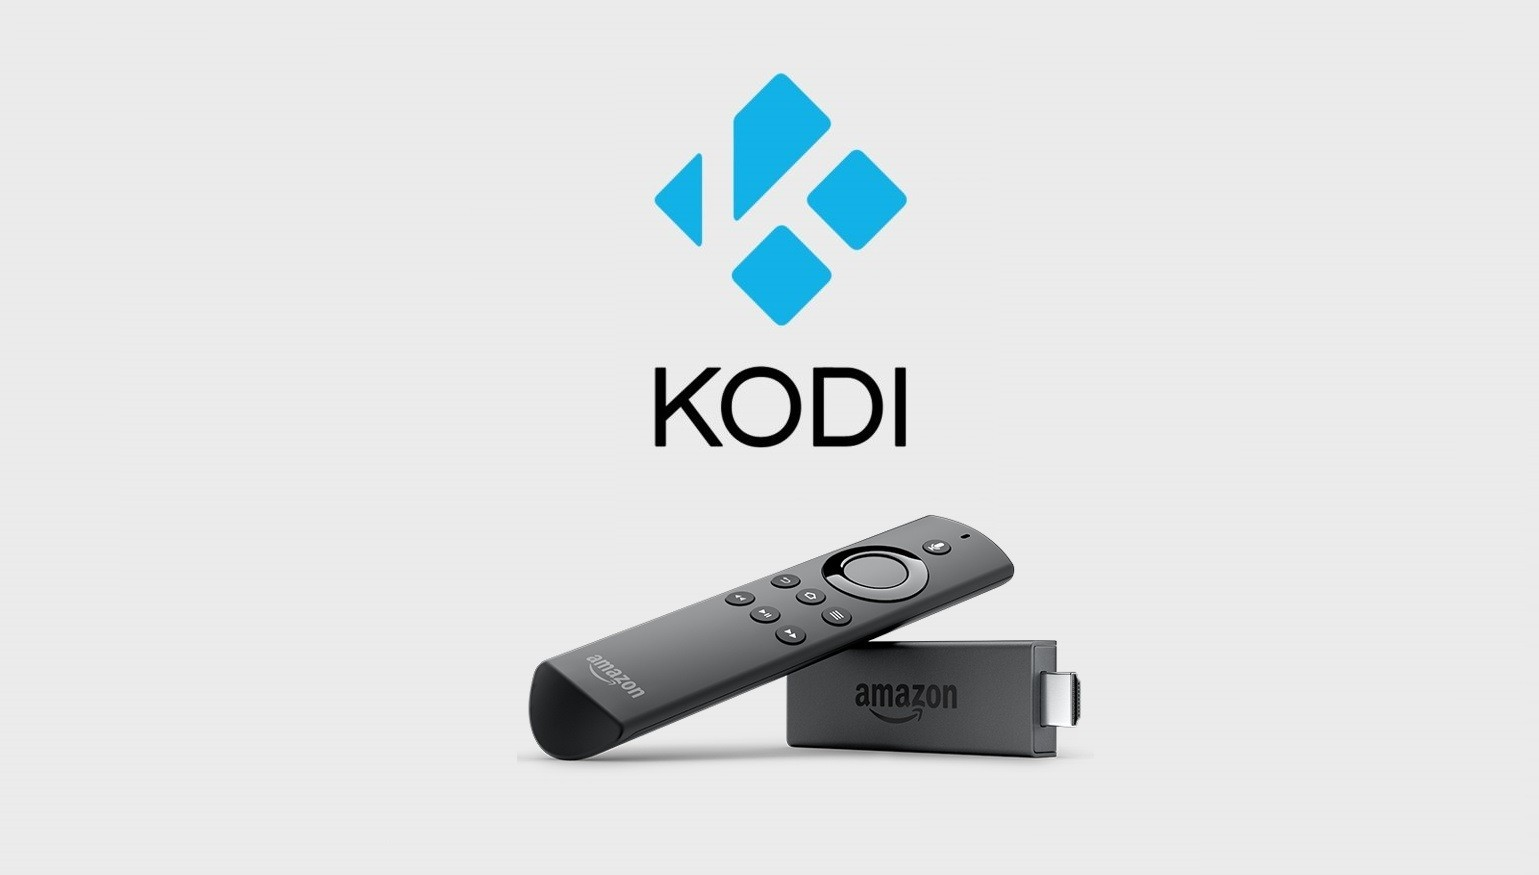 How to install Kodi on Firestick?